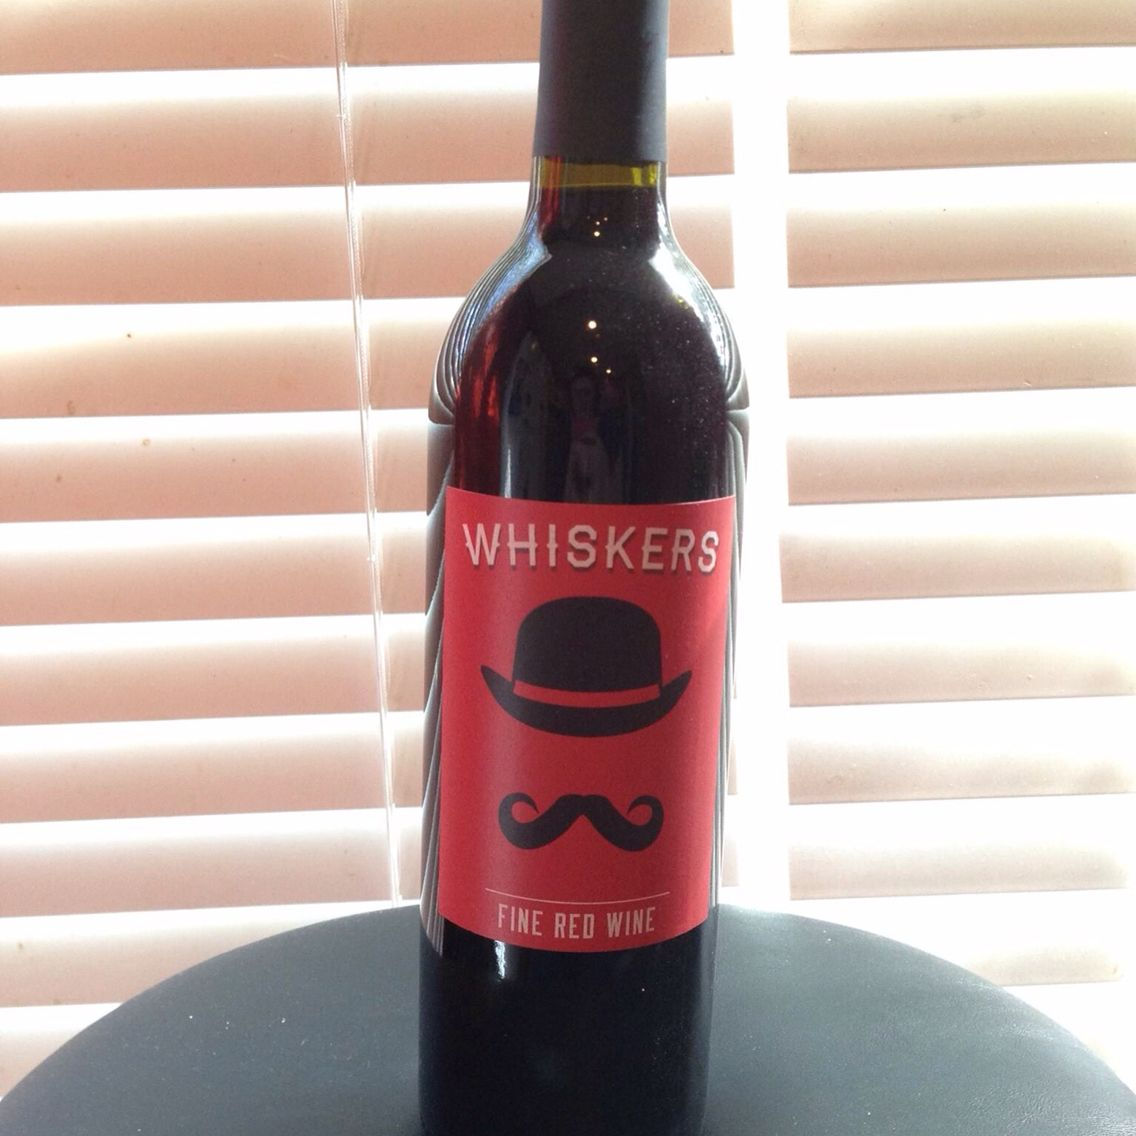 Whiskers Red Blend Lodi California This Wine Is A Blend Of Merlot Cabernet Sauvignon Zinfandel It Started The Agi Zinfandel Winemaking Traveling Vineyard